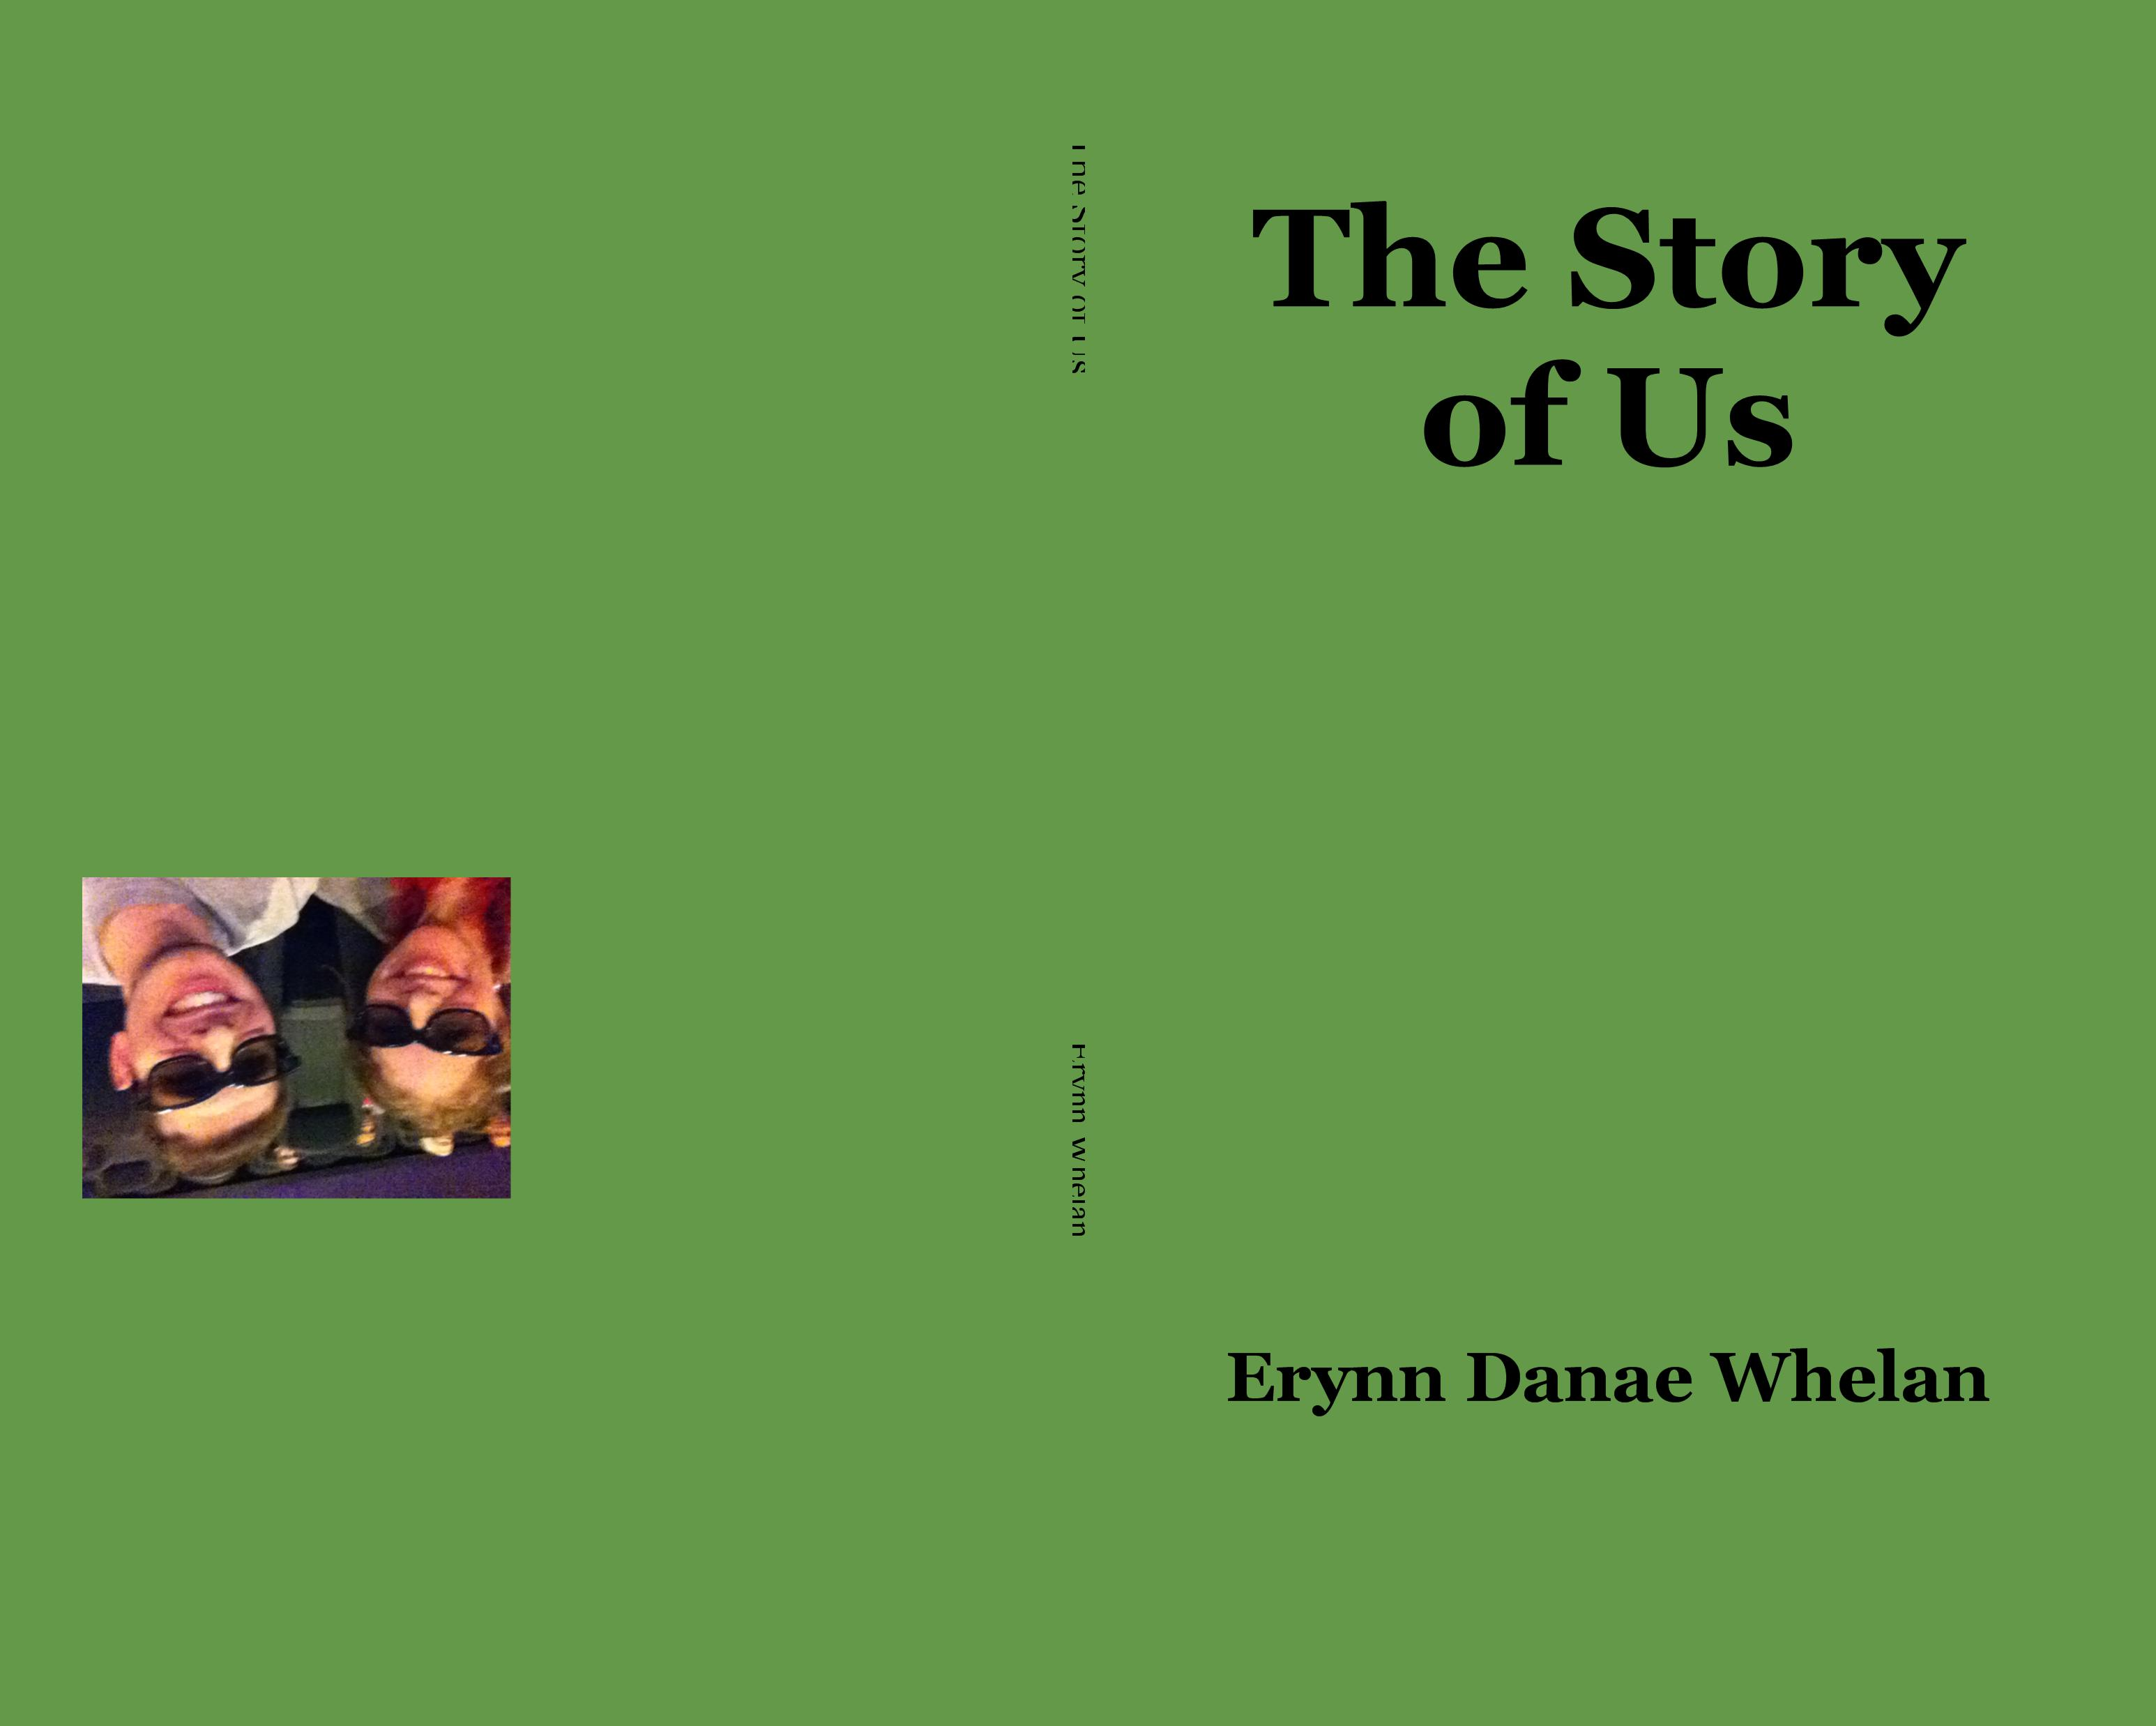 The Story of Us cover image